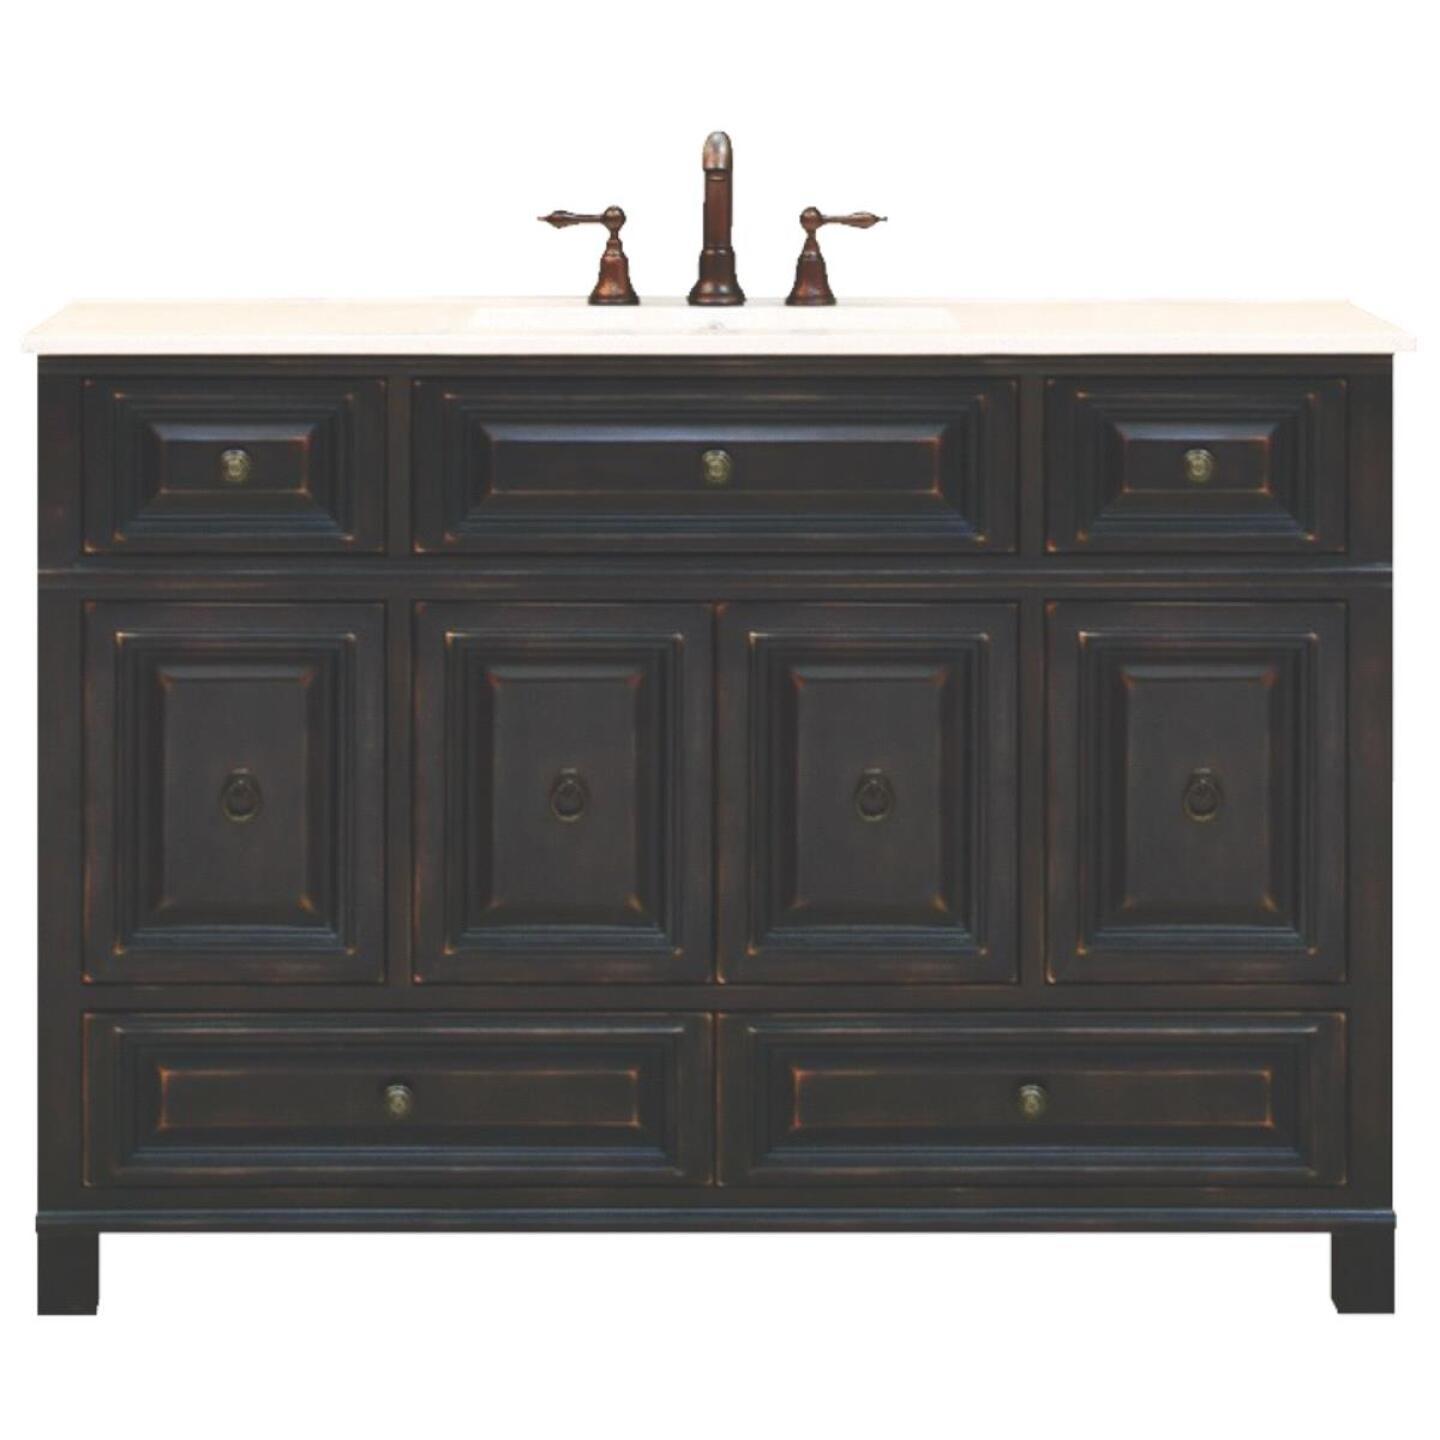 Sunny Wood Barton Hill Black Onyx 48 In. W x 34 In. H x 21 In. D Vanity Base, 4 Door/4 Drawer Image 1